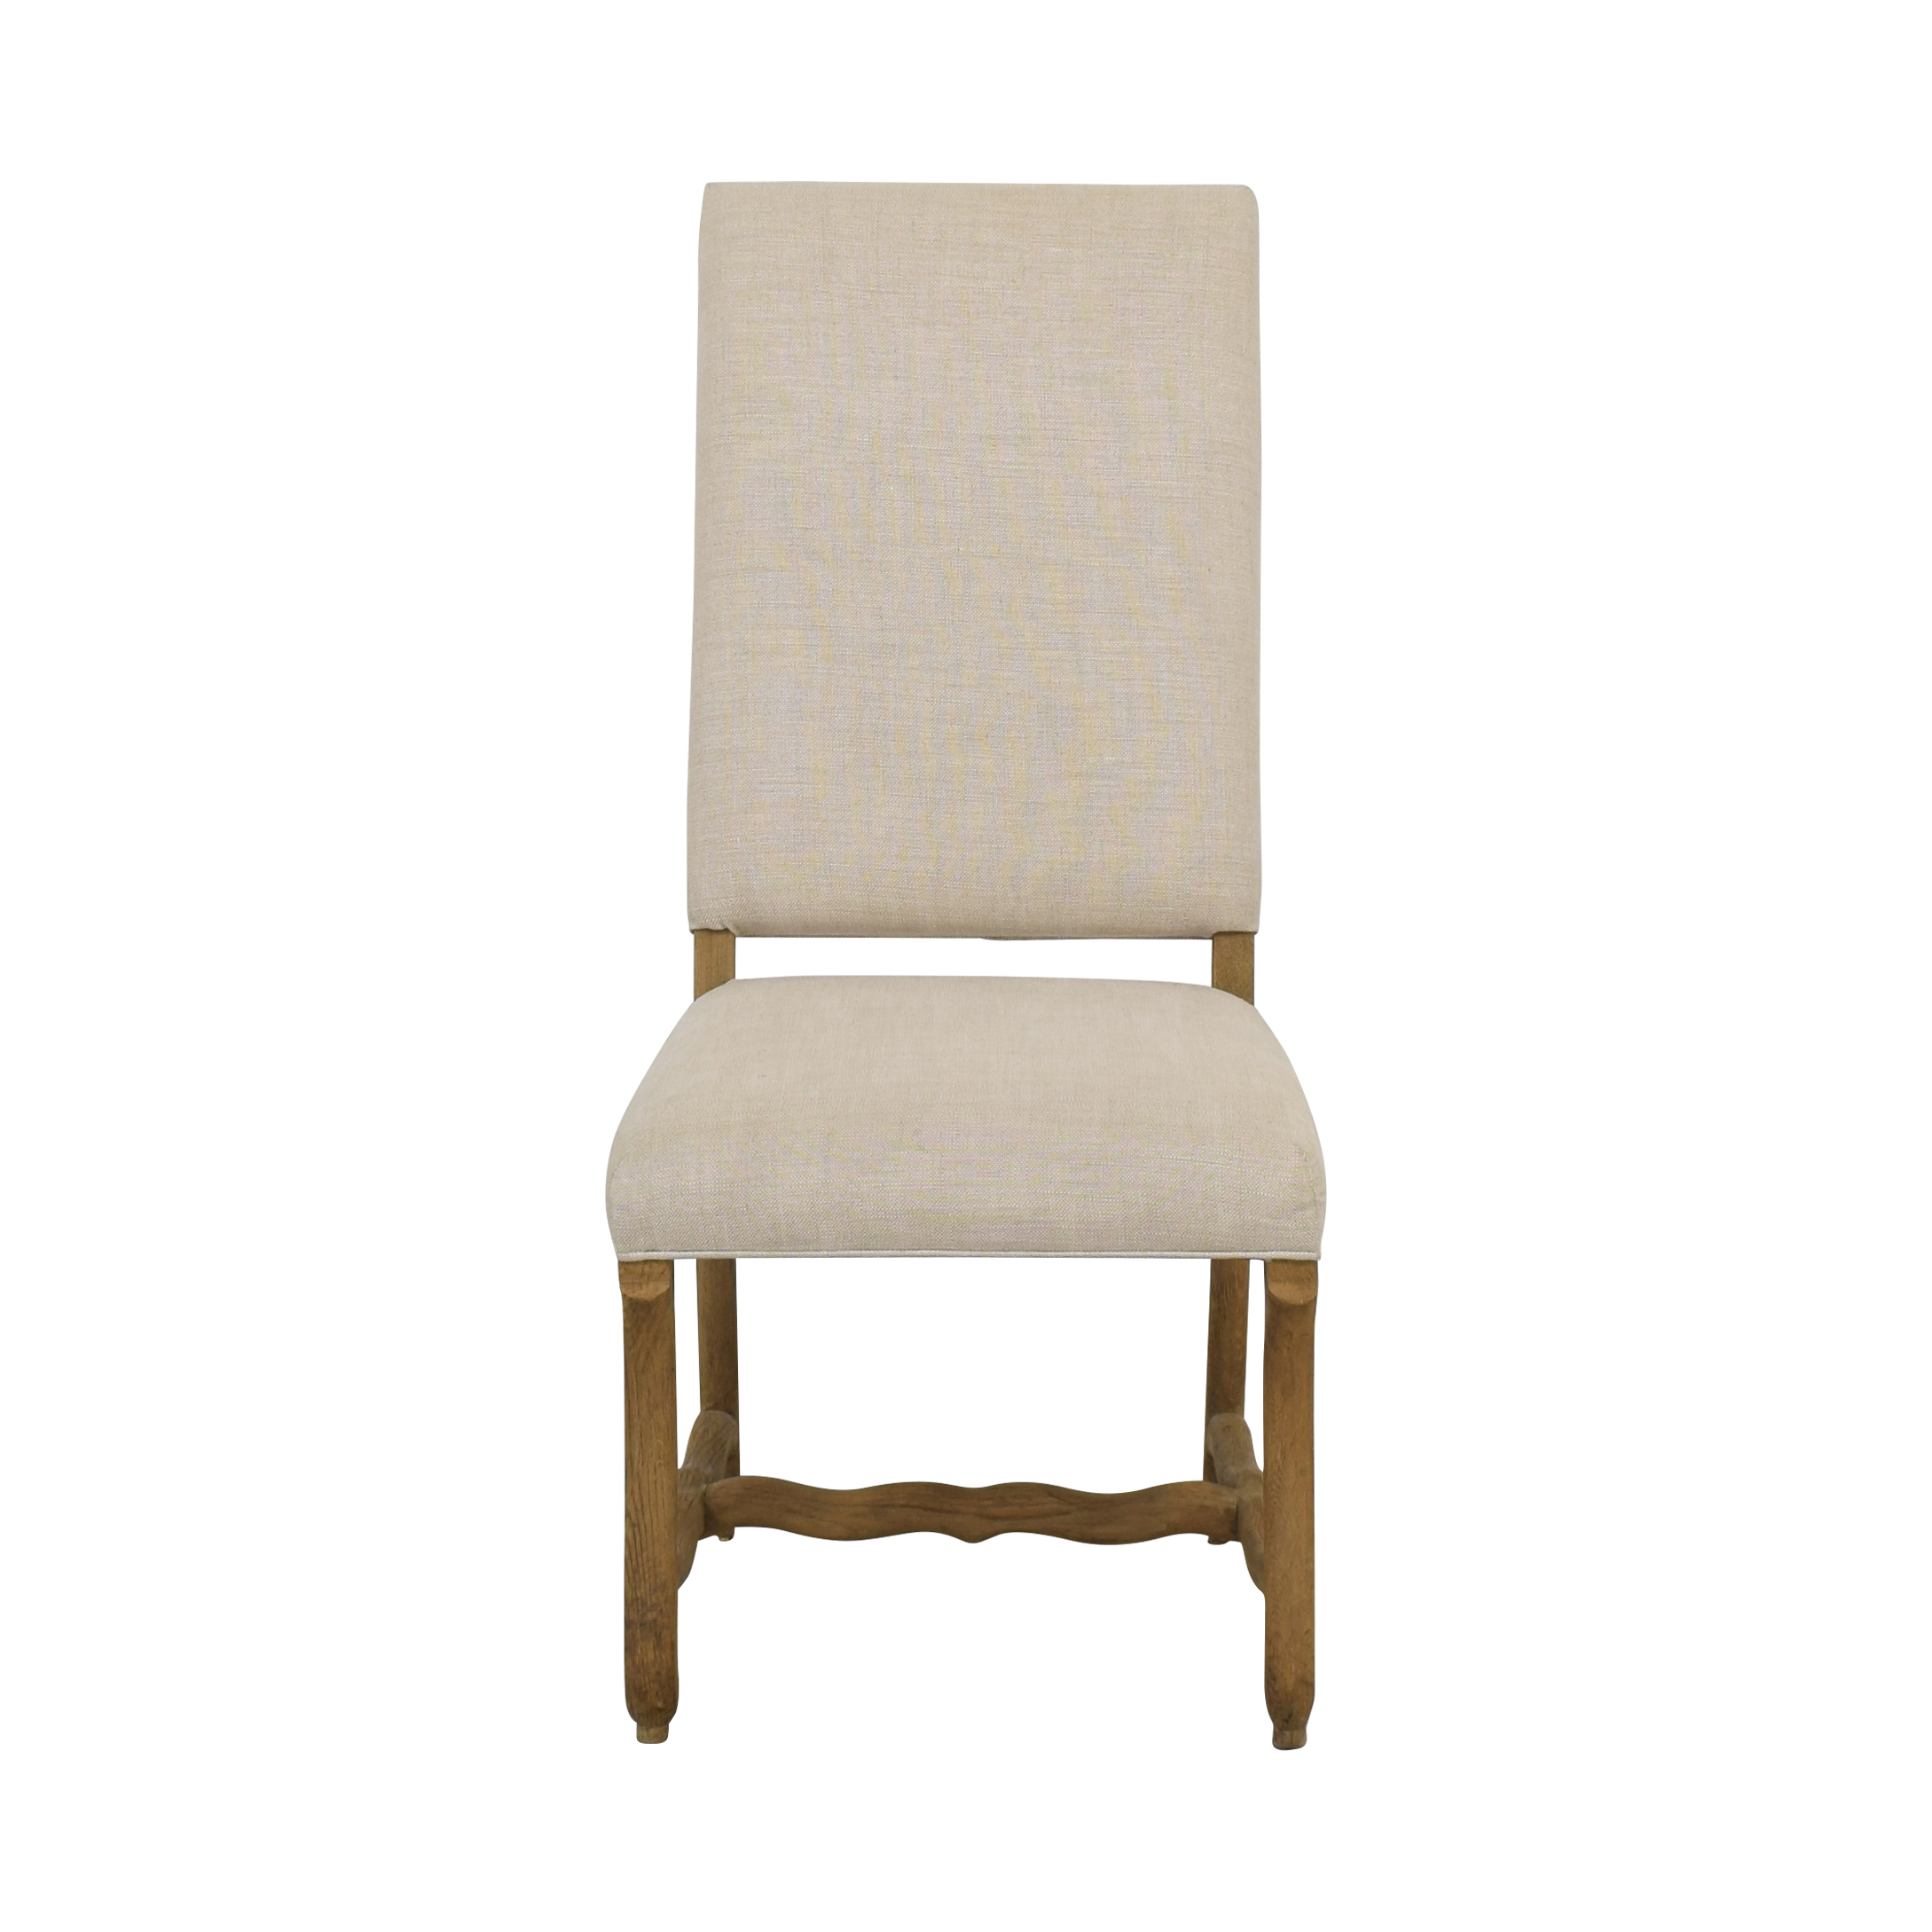 Restoration Hardware Restoration Hardware High Back Dining Chair discount